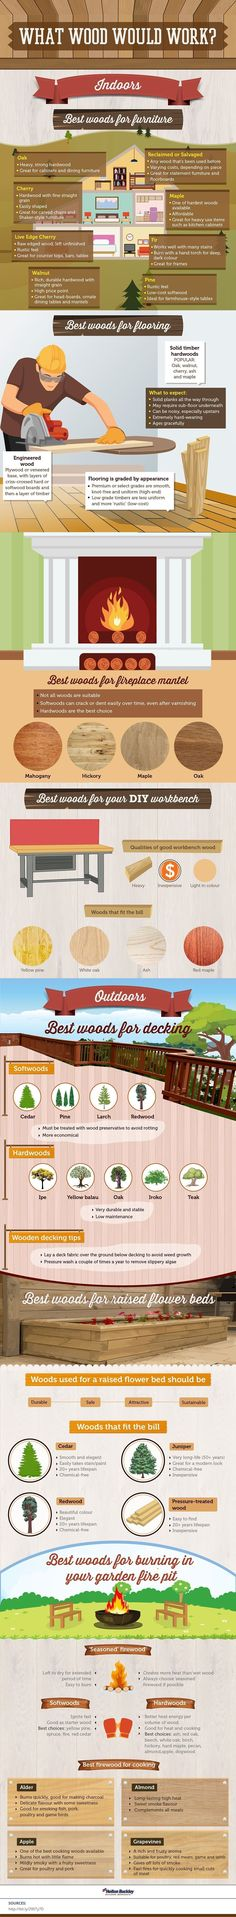 Which Wood is Best for Furniture, Flooring, Outdoors Infographic. Topic: carpenter, carpentry, woodworking, interior design, home improvement. #woodworkinginfographic #homeimprovementinfographic